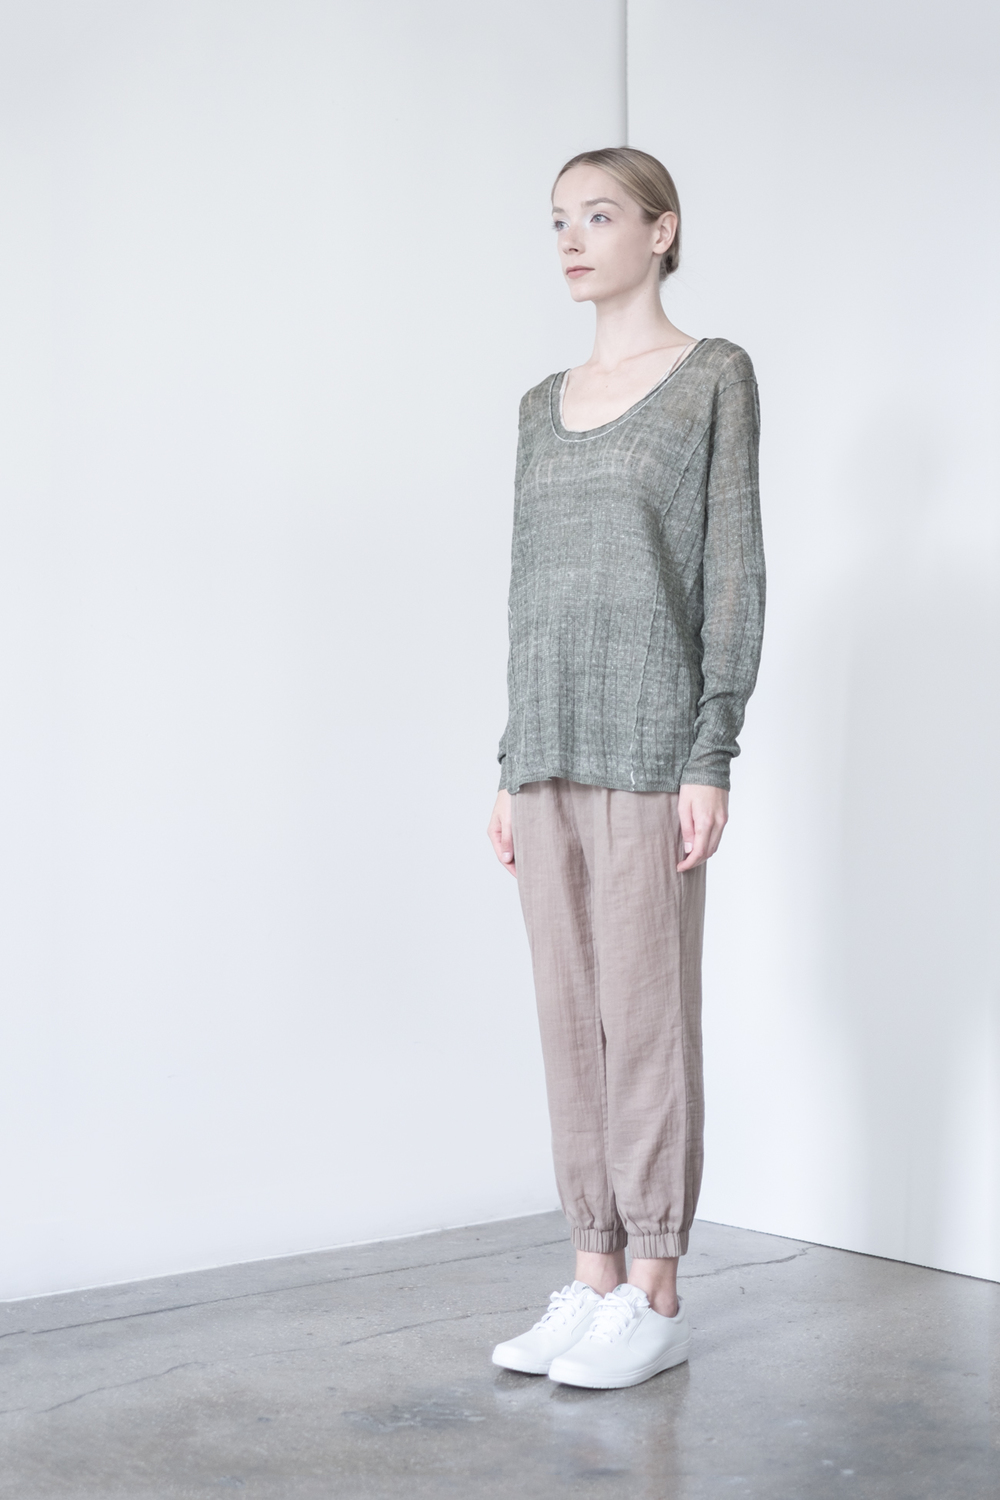 LOOK 23   TOP:  2230  / Clover   -    Scoop neck long sleeve, in fine gauge Italian linen neps.    BOTTOM:   2290  / Timber  -   Jogger pants in 100% Cotton woven dbl. layer gauze.